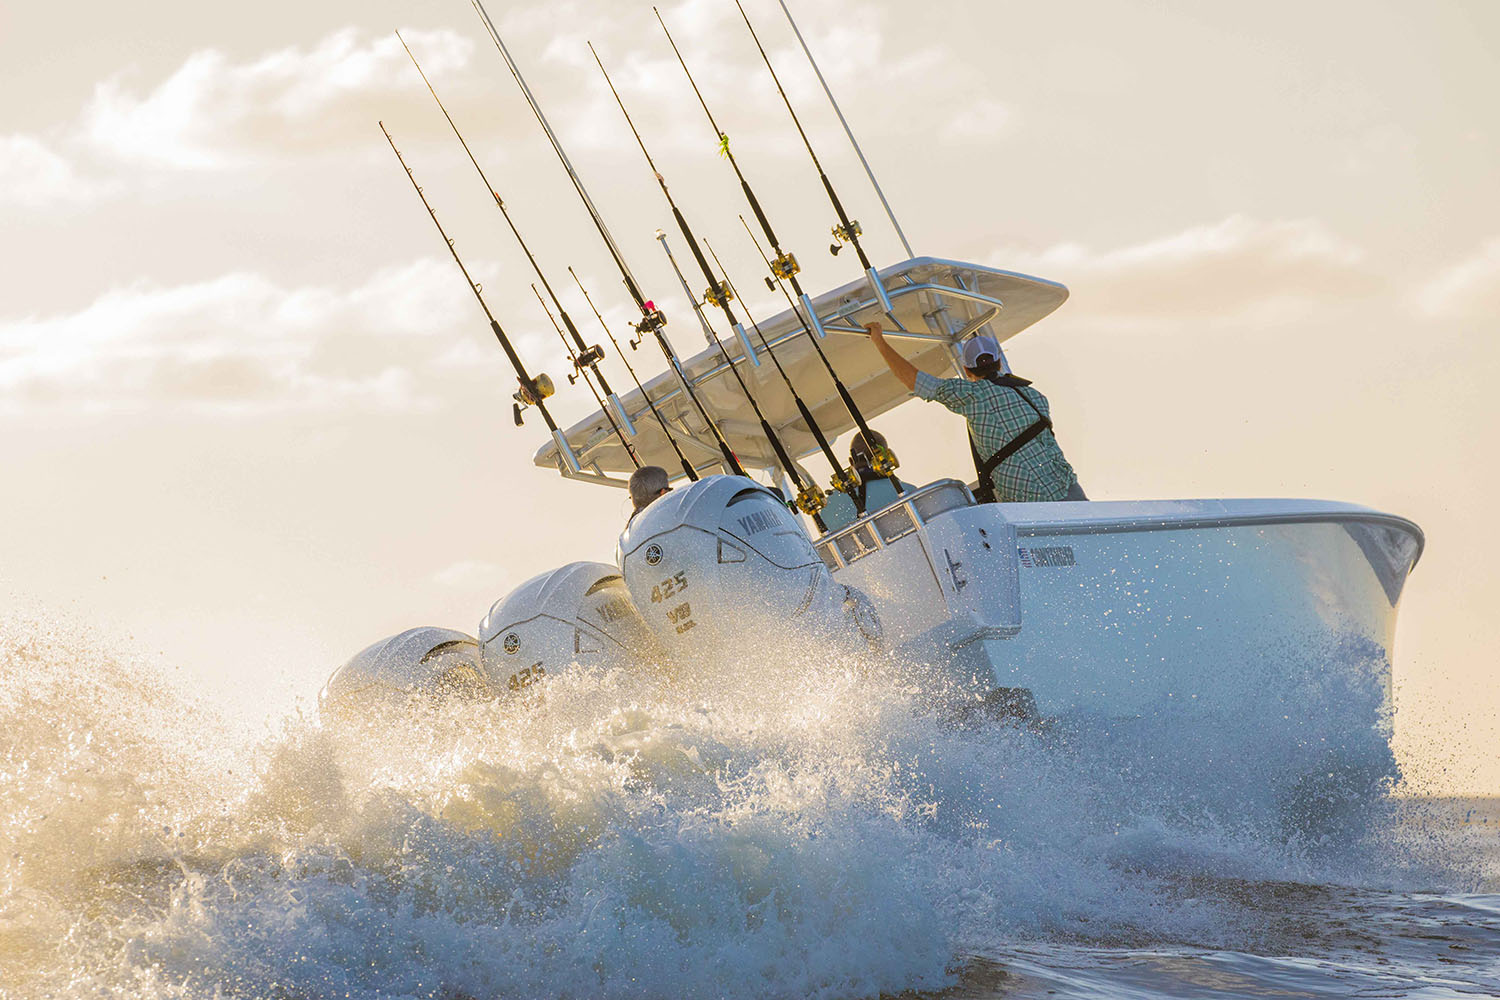 Yamaha F425 XTO Offshore Outboard Hits The Water - BDoutdoors